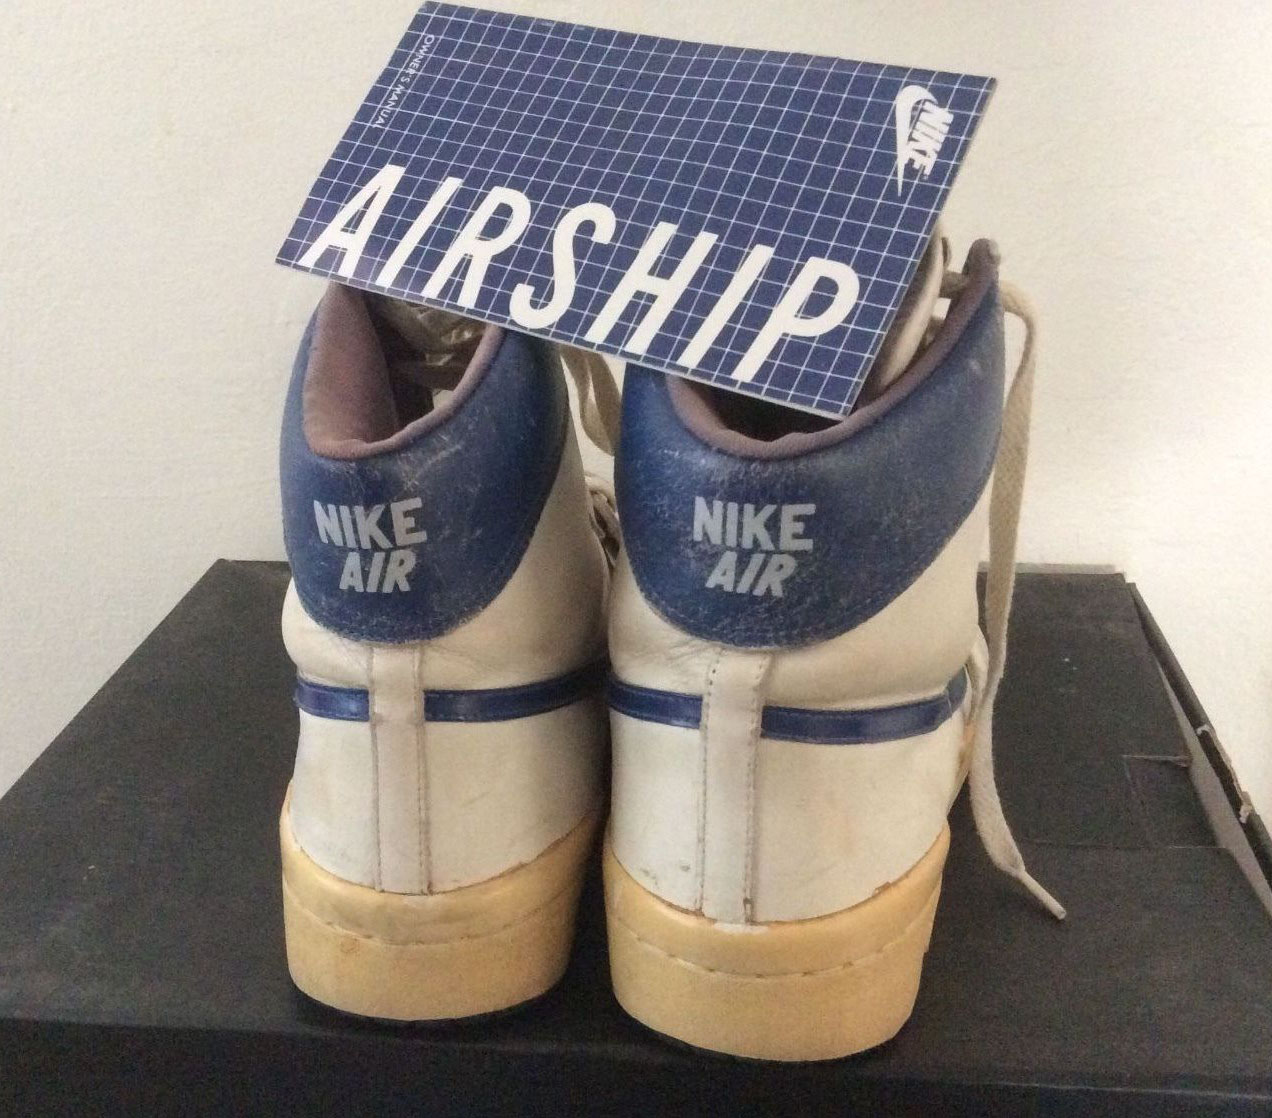 A Rare Look At Nike Air Ship - Michael Jordan's First Pro Sneaker